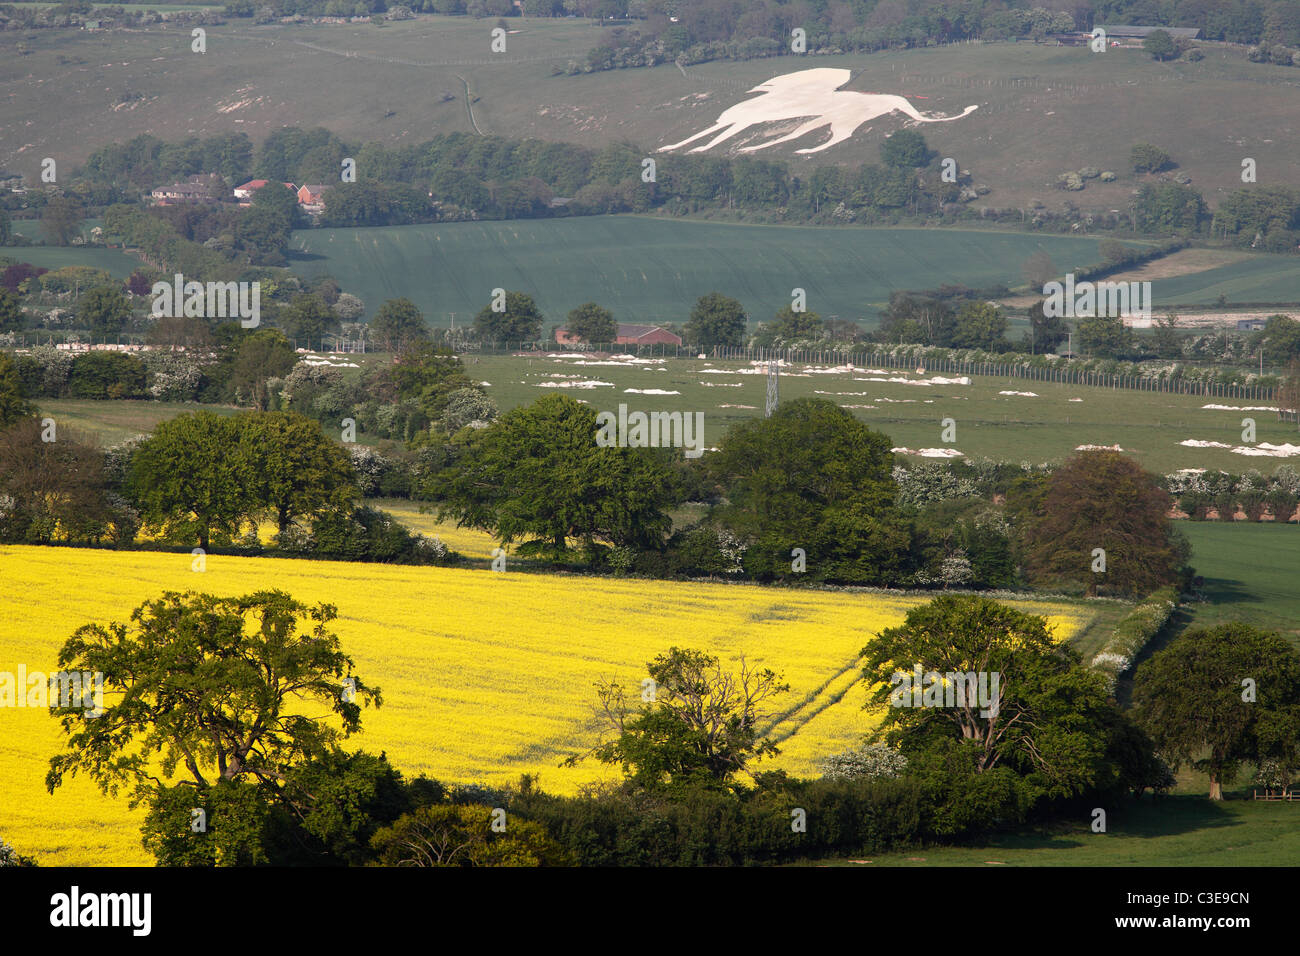 Chilterns countryside, Buckinghamshire, 'Whipsnade Zoo' chalk lion in background - Stock Image